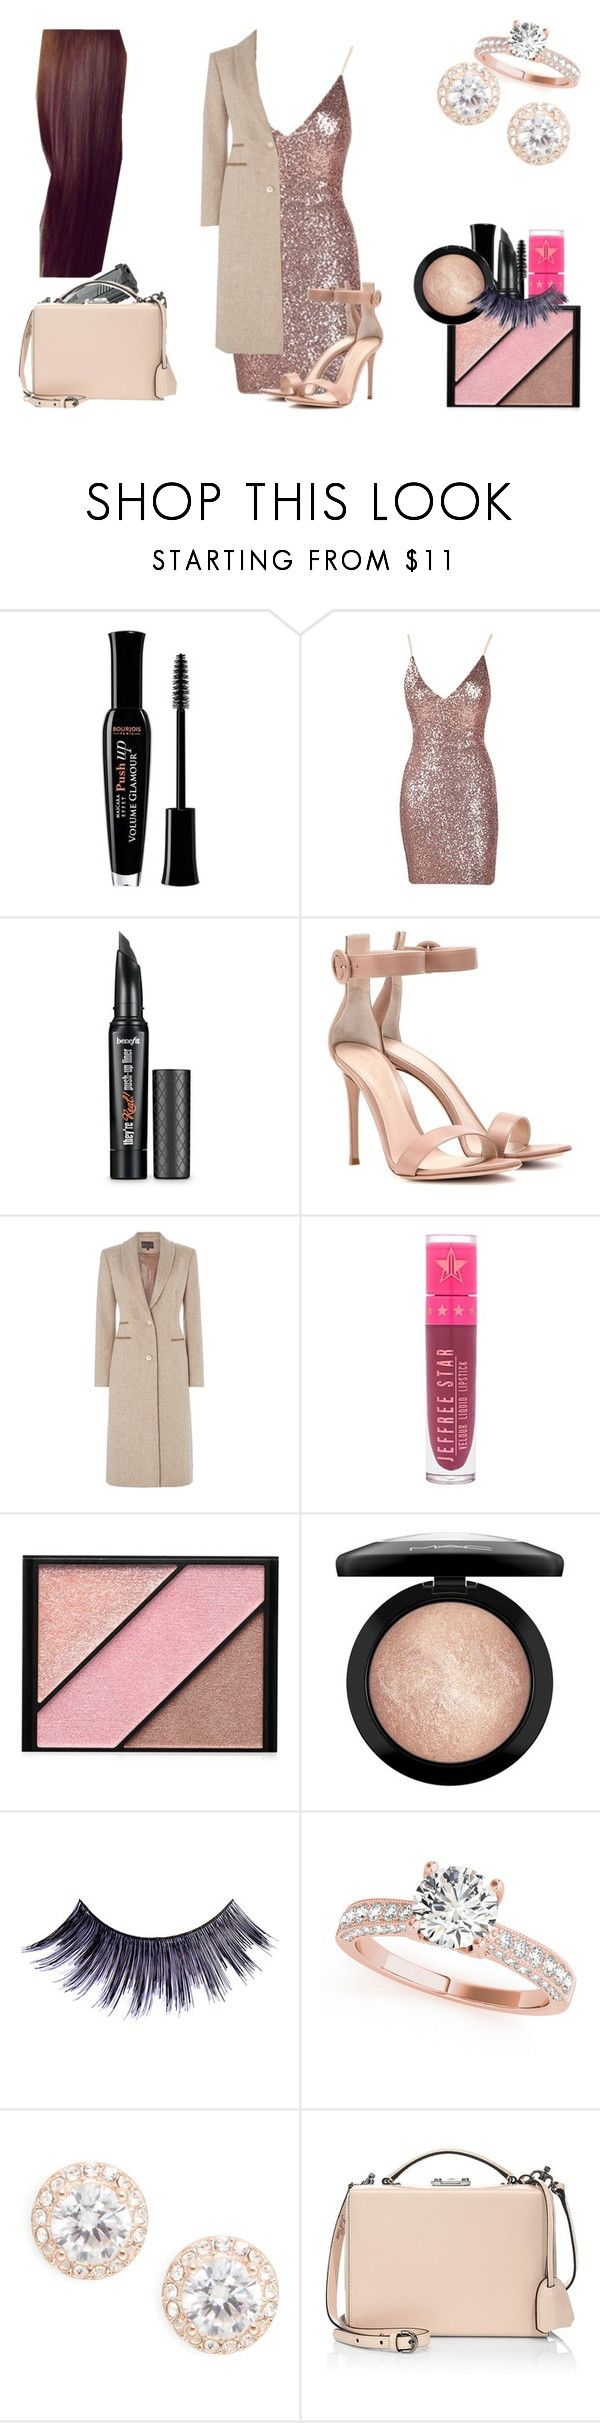 """""""Lucille Victoria Austin"""" by shestheman01 ❤ liked on Polyvore featuring Bourjois, Benefit, Gianvito Rossi, Jeffree Star, Elizabeth Arden, MAC Cosmetics, Manic Panic NYC, Nadri and Mark Cross"""